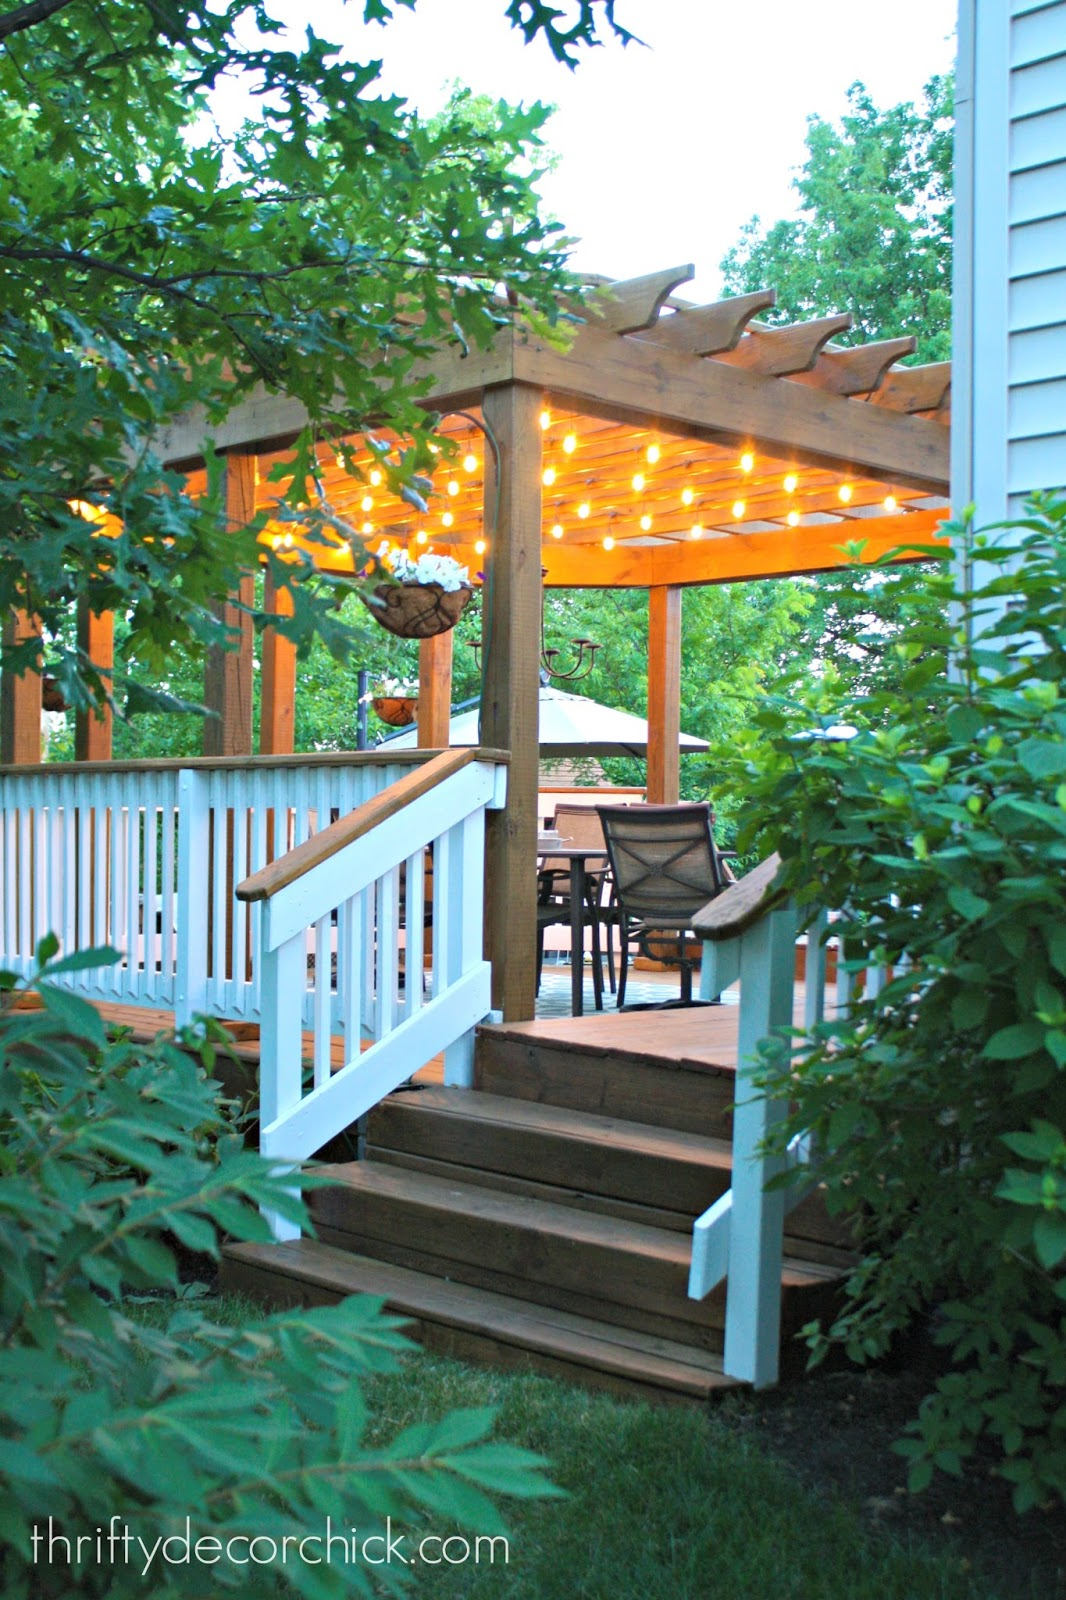 Outdoor lights under pergola - How To Hang Outdoor String Lights From Thrifty Decor Chick